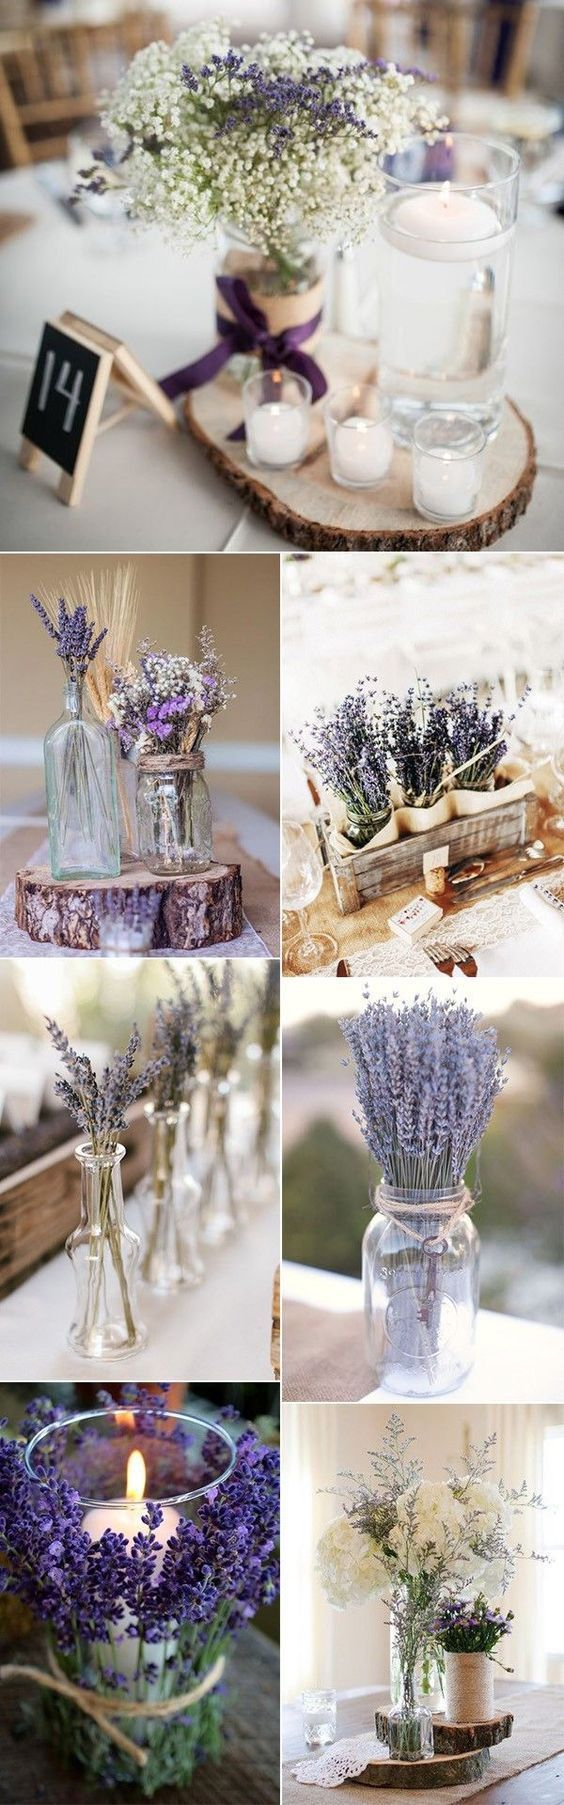 46 Lavender Wedding Ideas to Inspire Your Big Day - #46 #big #Day #ideas #Inspire #Lavender #to #Wedding #Your